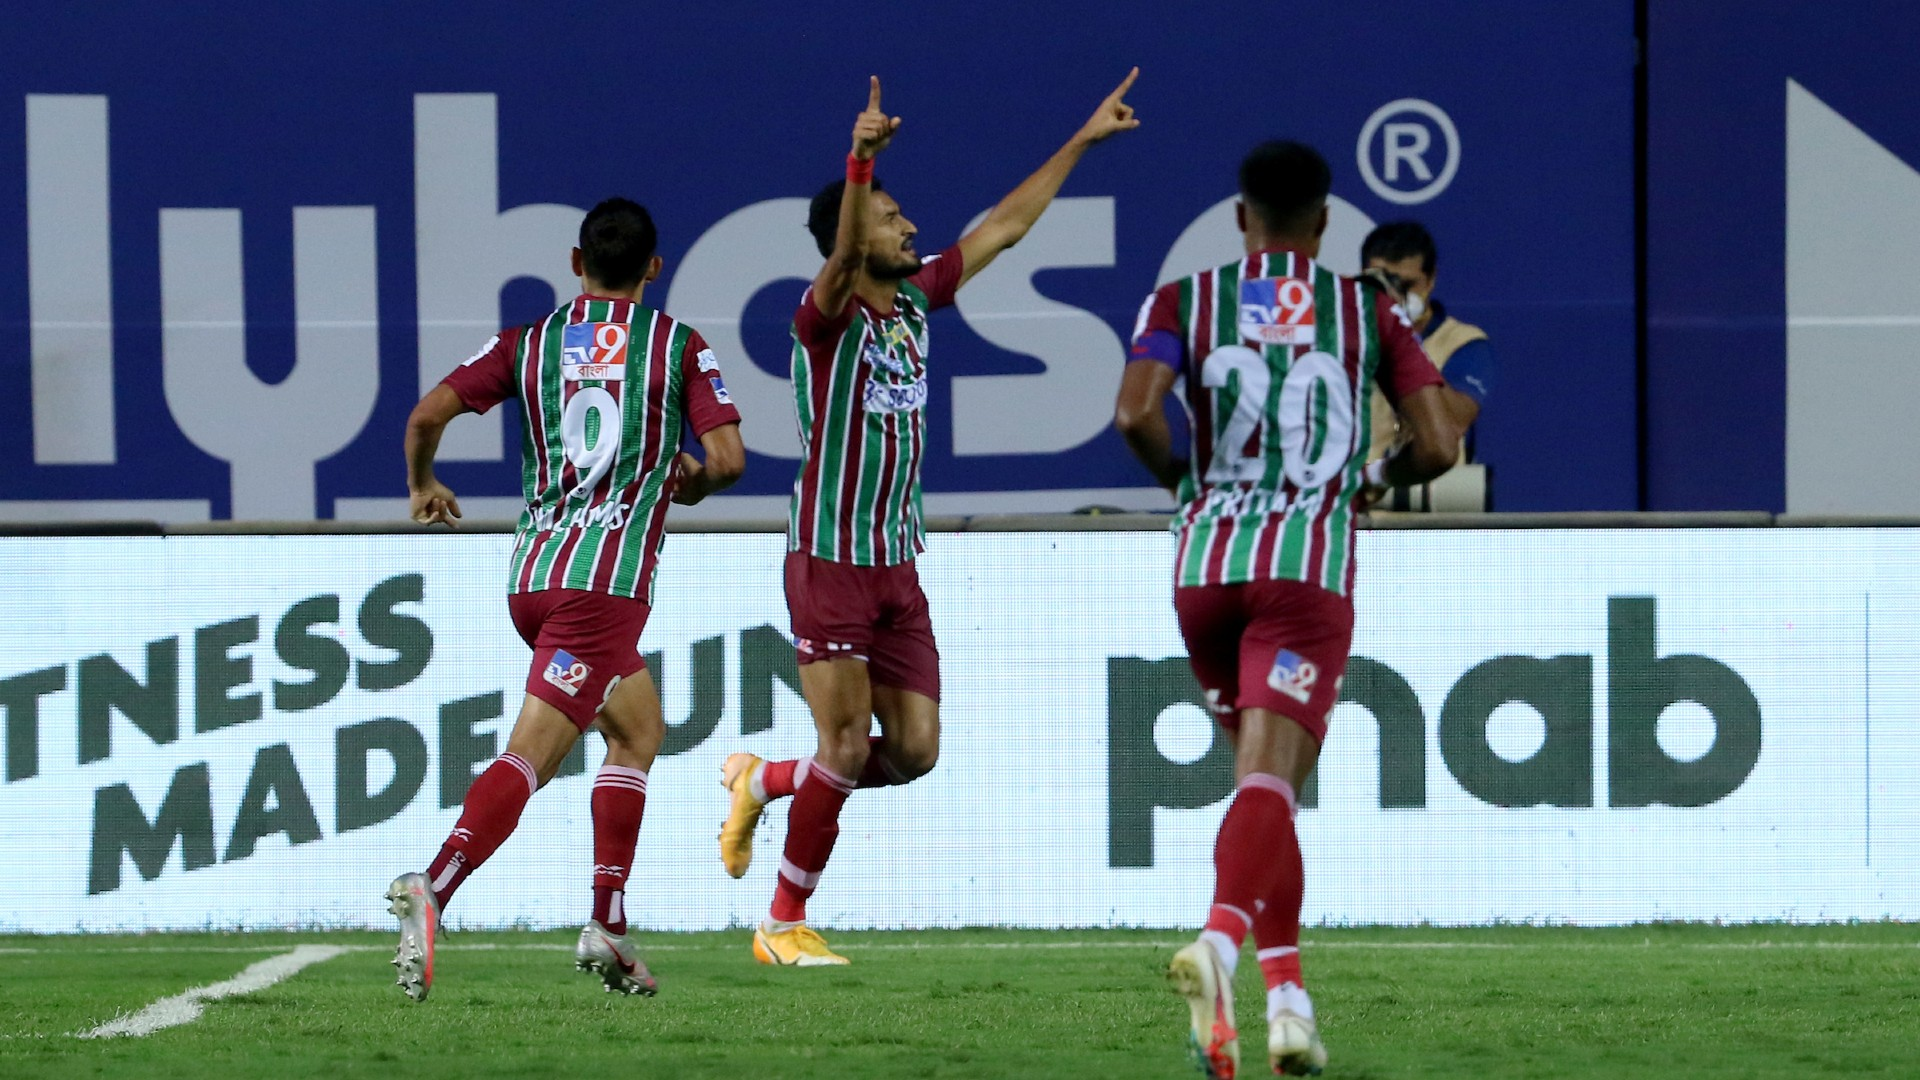 ISL Final: The evolution of Bipin Singh and Manvir Singh as goal scorers